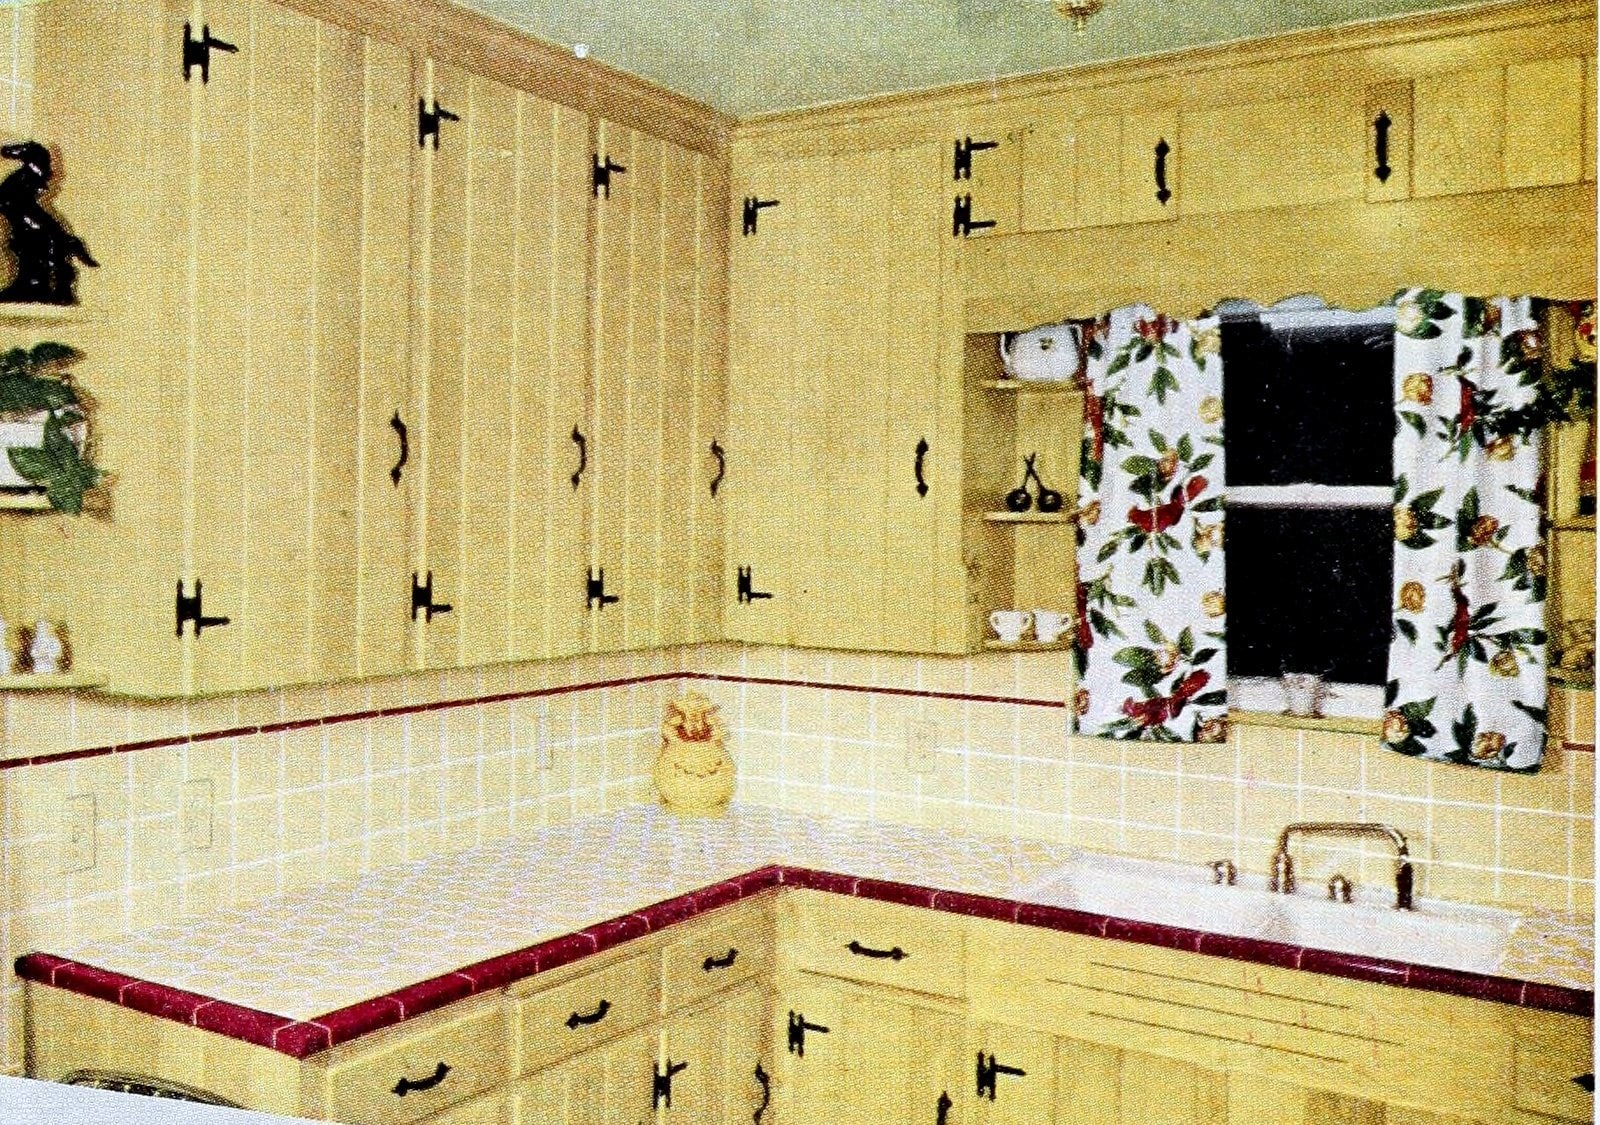 Vintage 50s kitchen with plank cabinetry and ceramic tile countertops (1954)